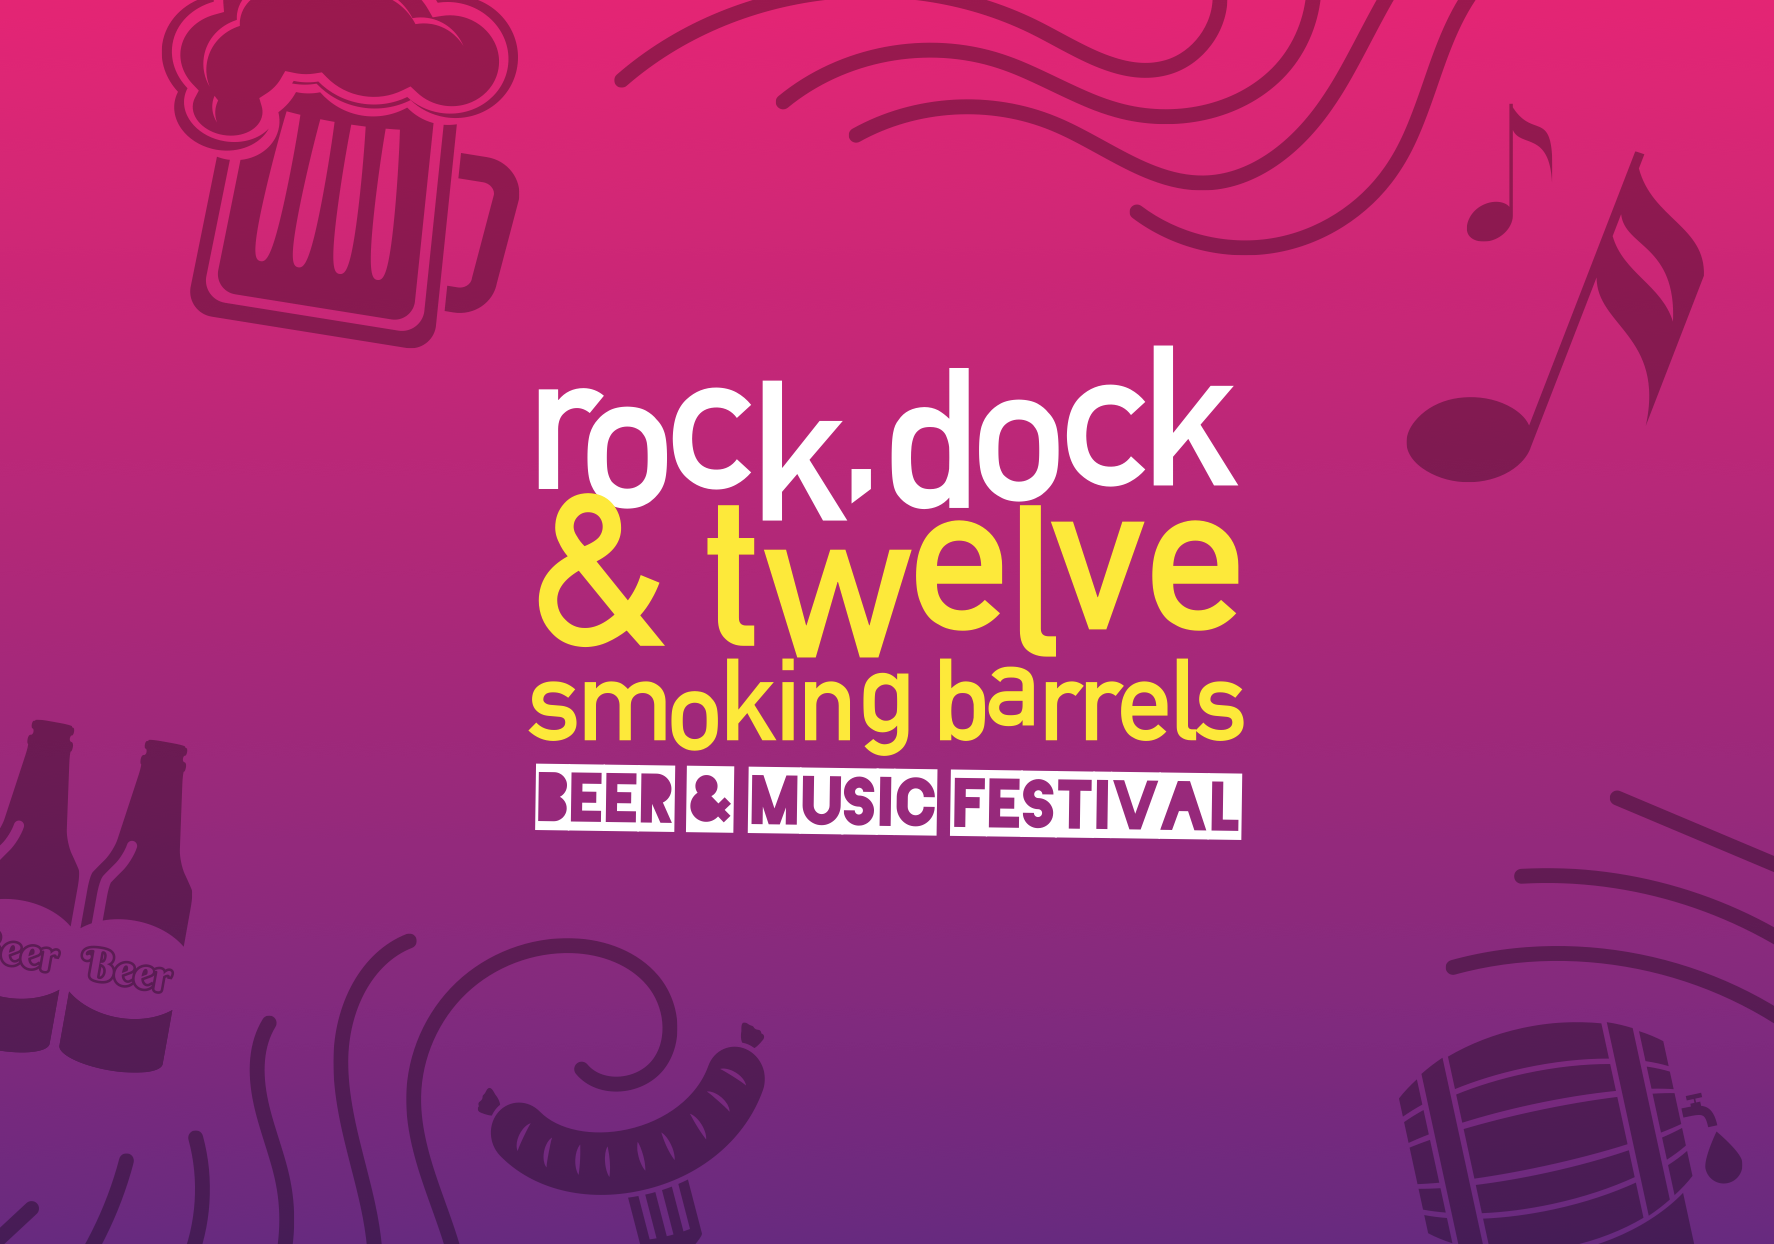 Rock+Dock+Festival.png